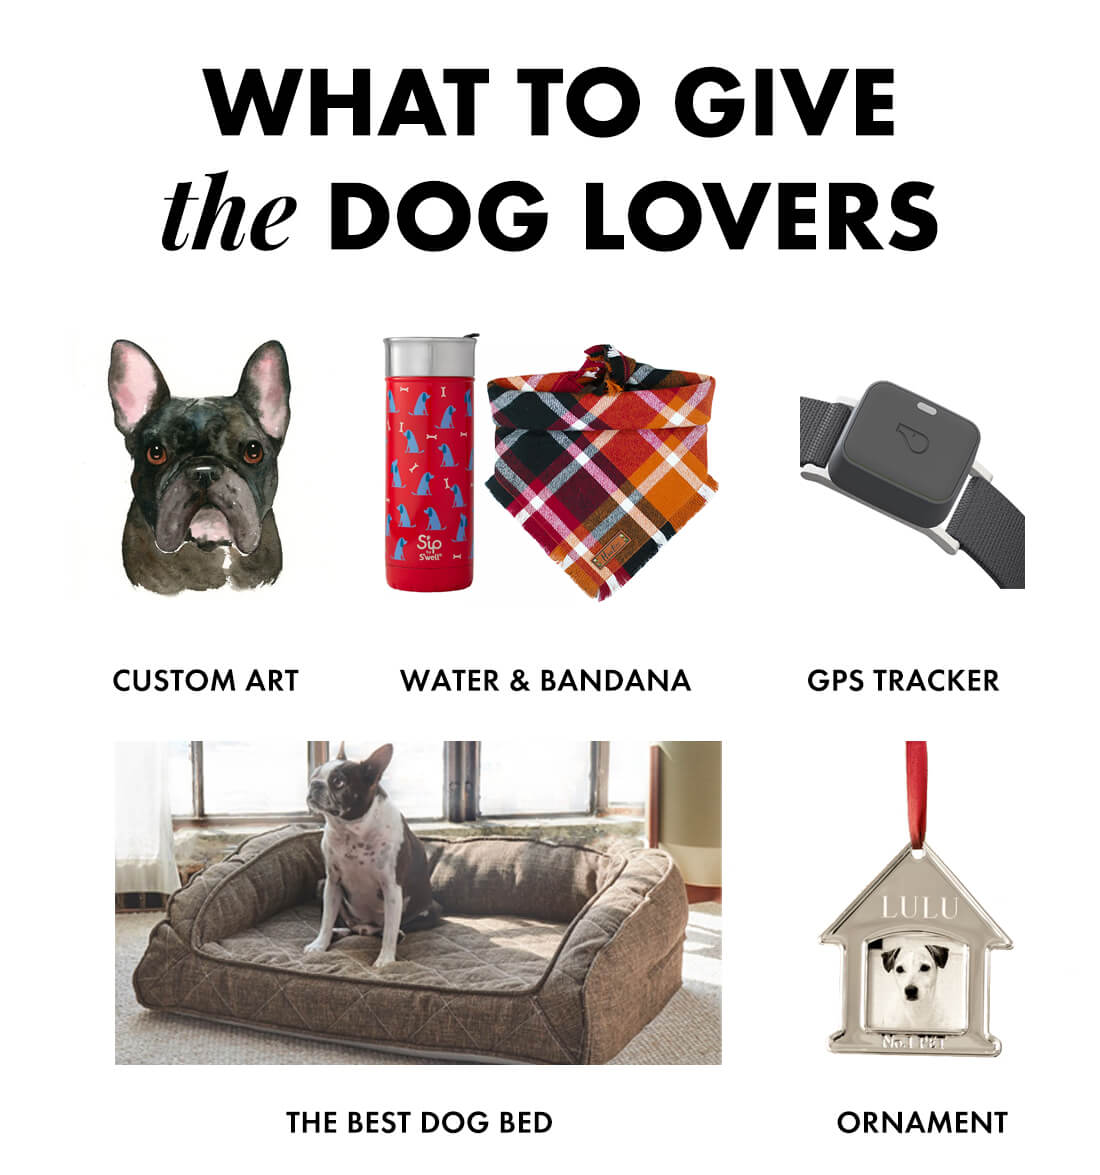 Gifts for the dogs and dog lovers 2019